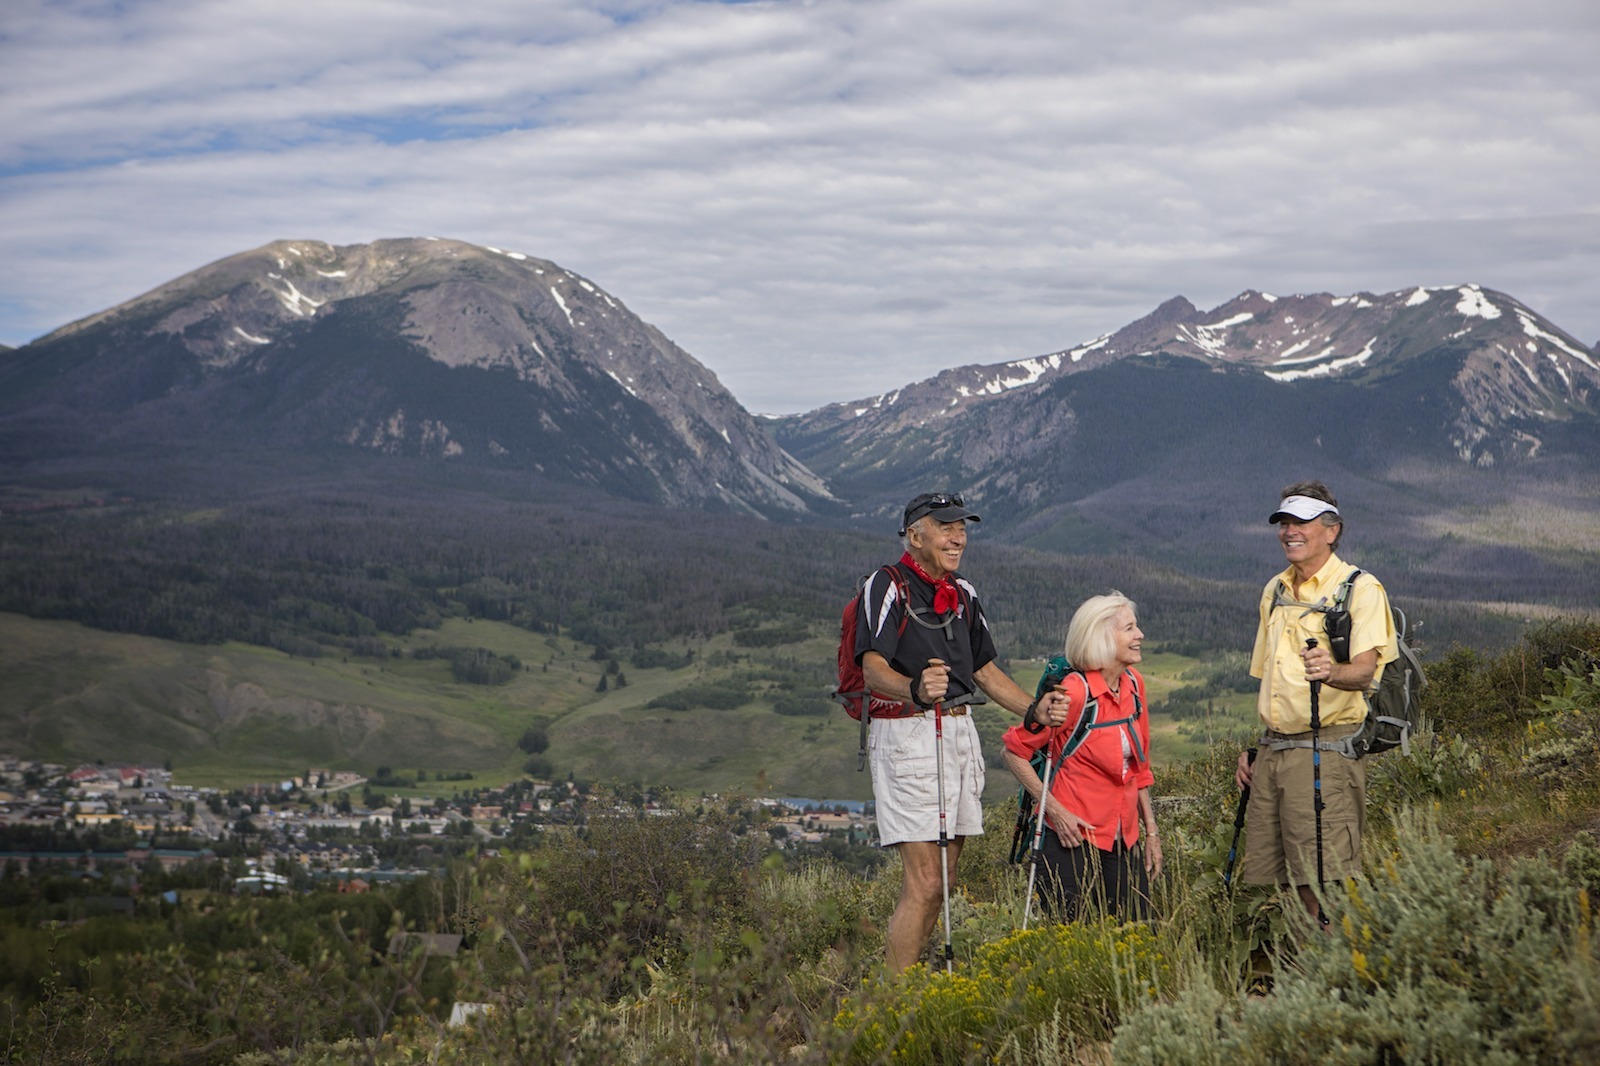 A group enjoys a hike in high Colorado country